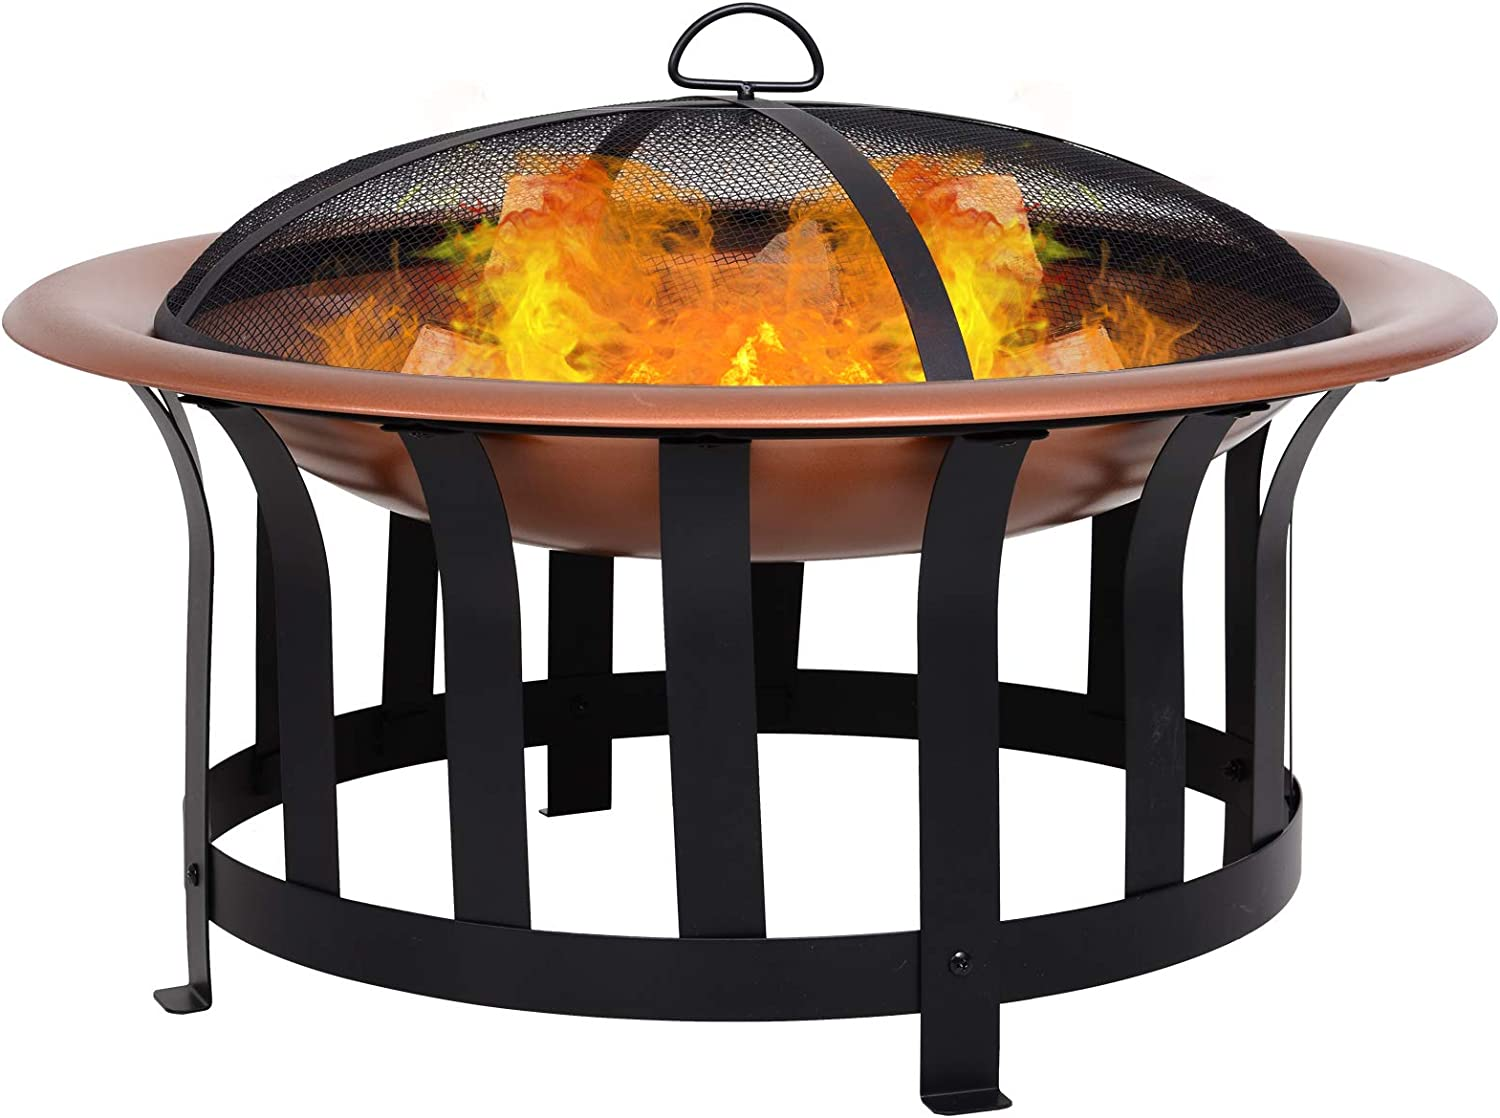 Outsunny Copper-Colored Round Metal Fire Pit – Best Powder Coated Model